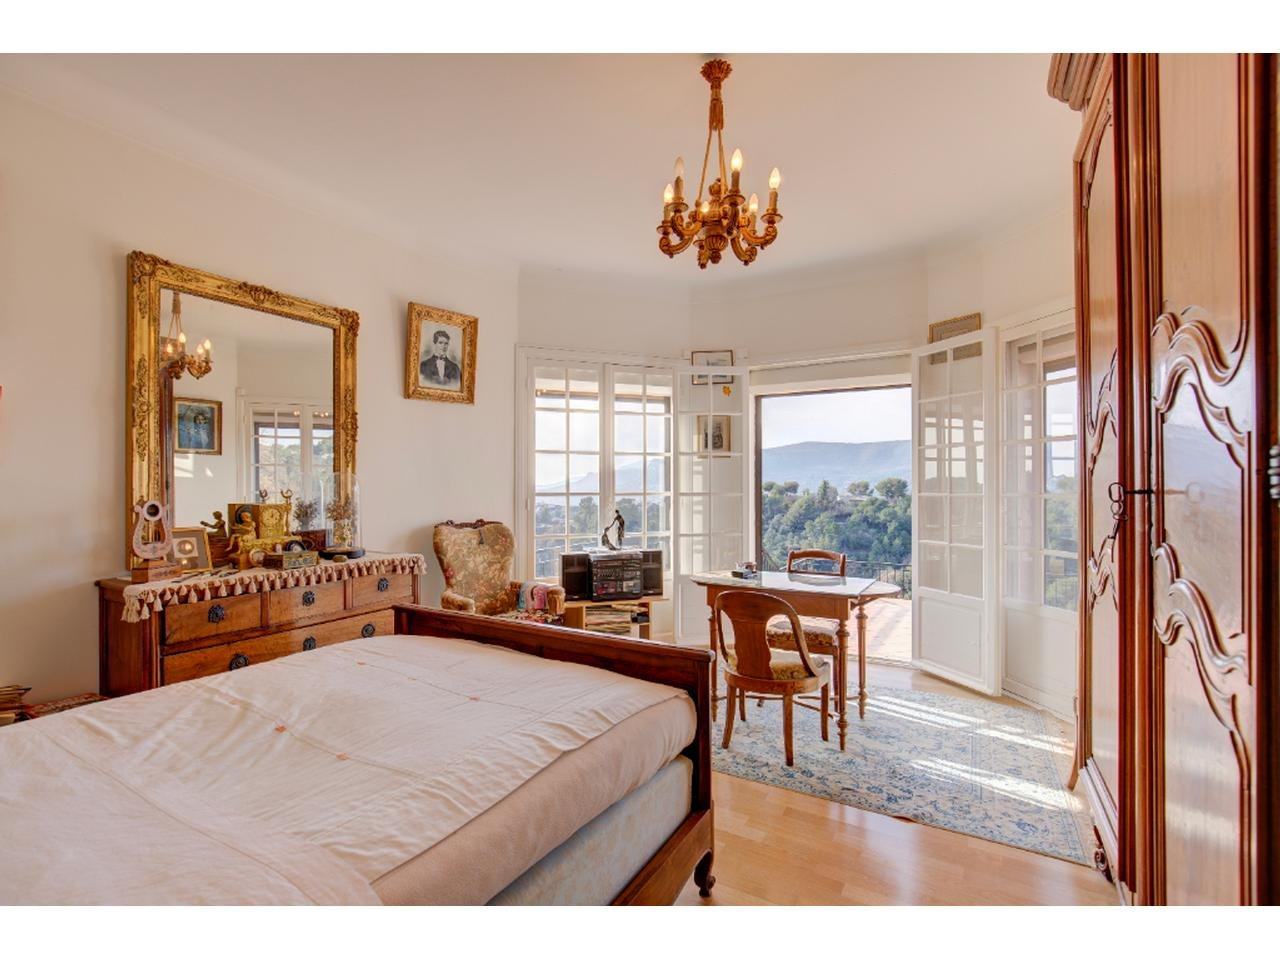 Maison  7 Rooms 255m2  for sale   990 000 €